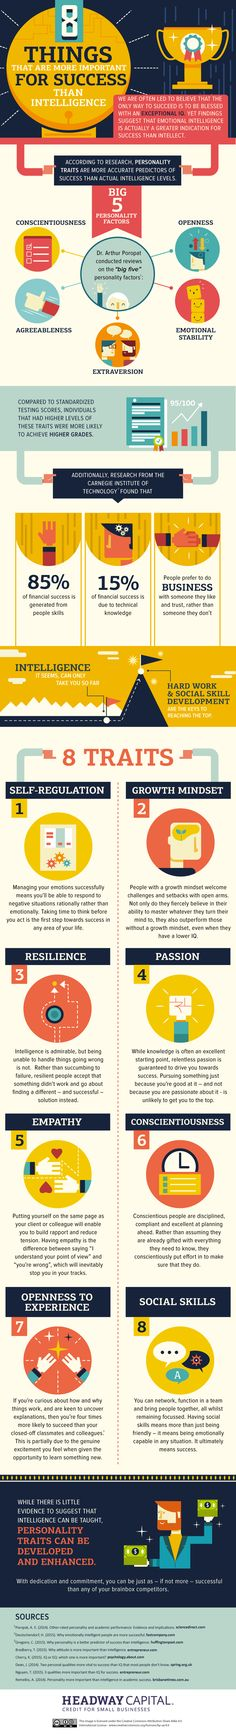 8 Things That are More Important for Success Than Intelligence. What do you think of these?